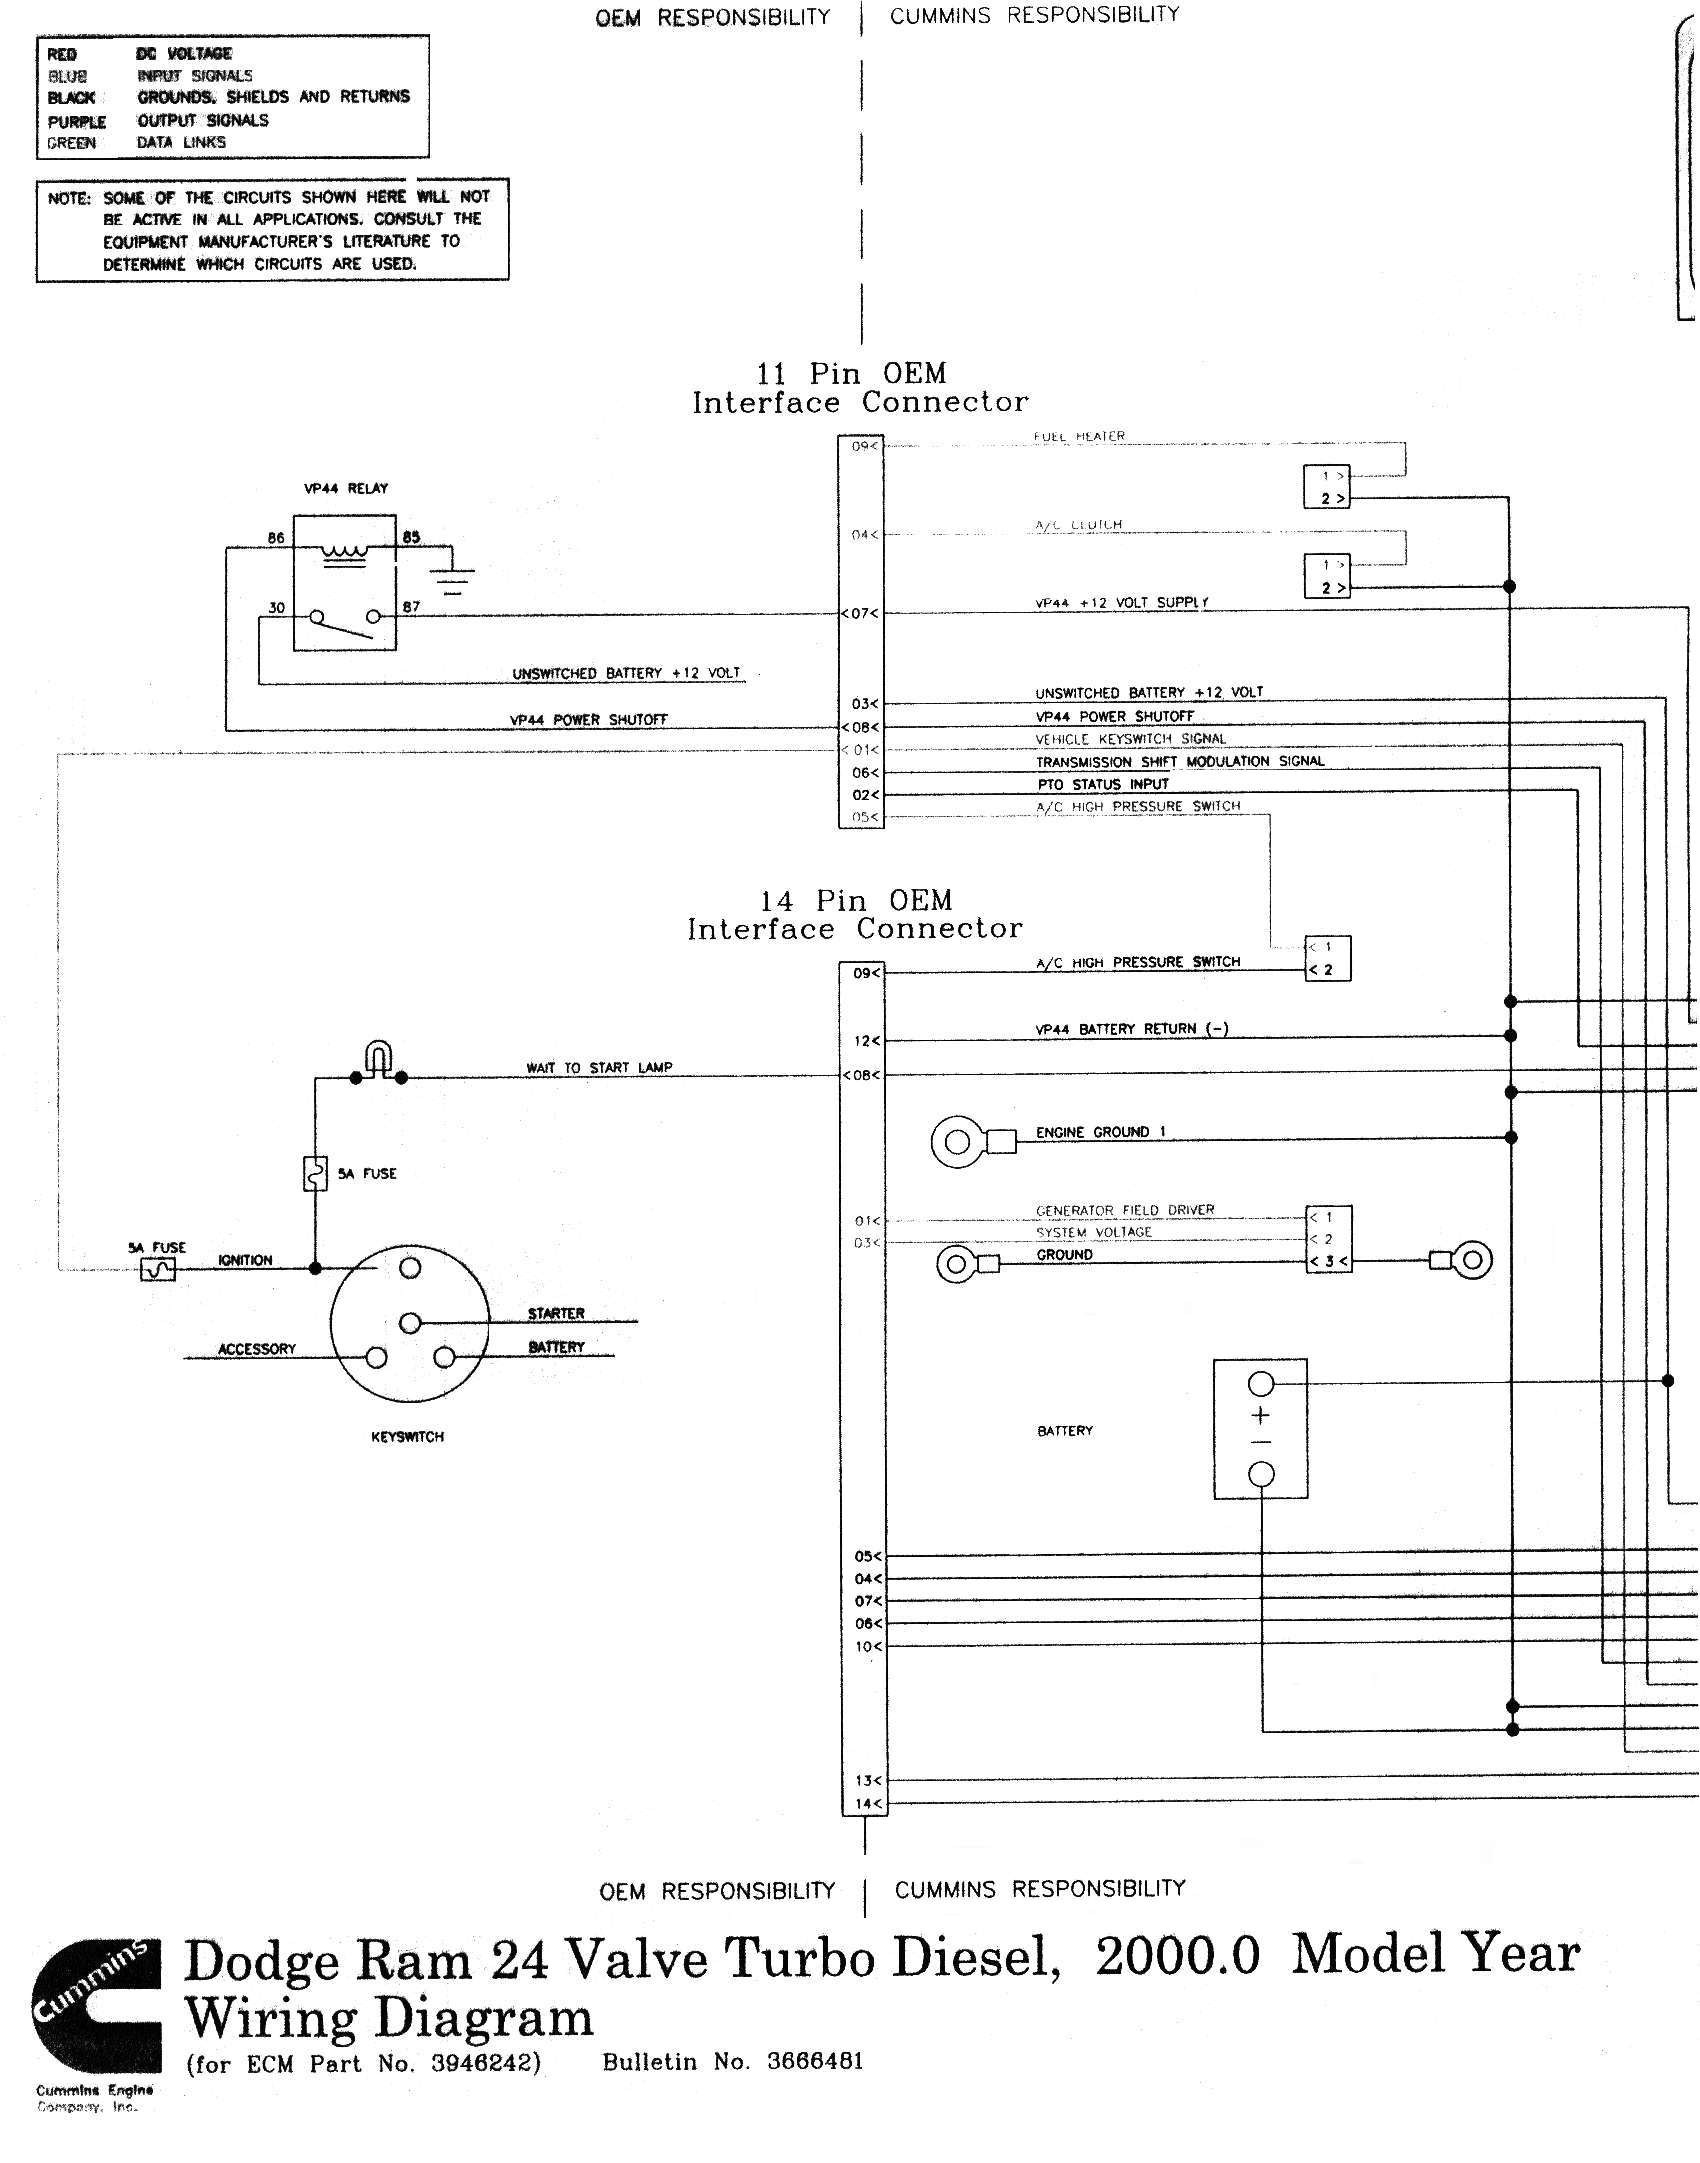 wiring diagram 1992 dodge d250 cummins digital resources Honda Civic Wiring Diagram